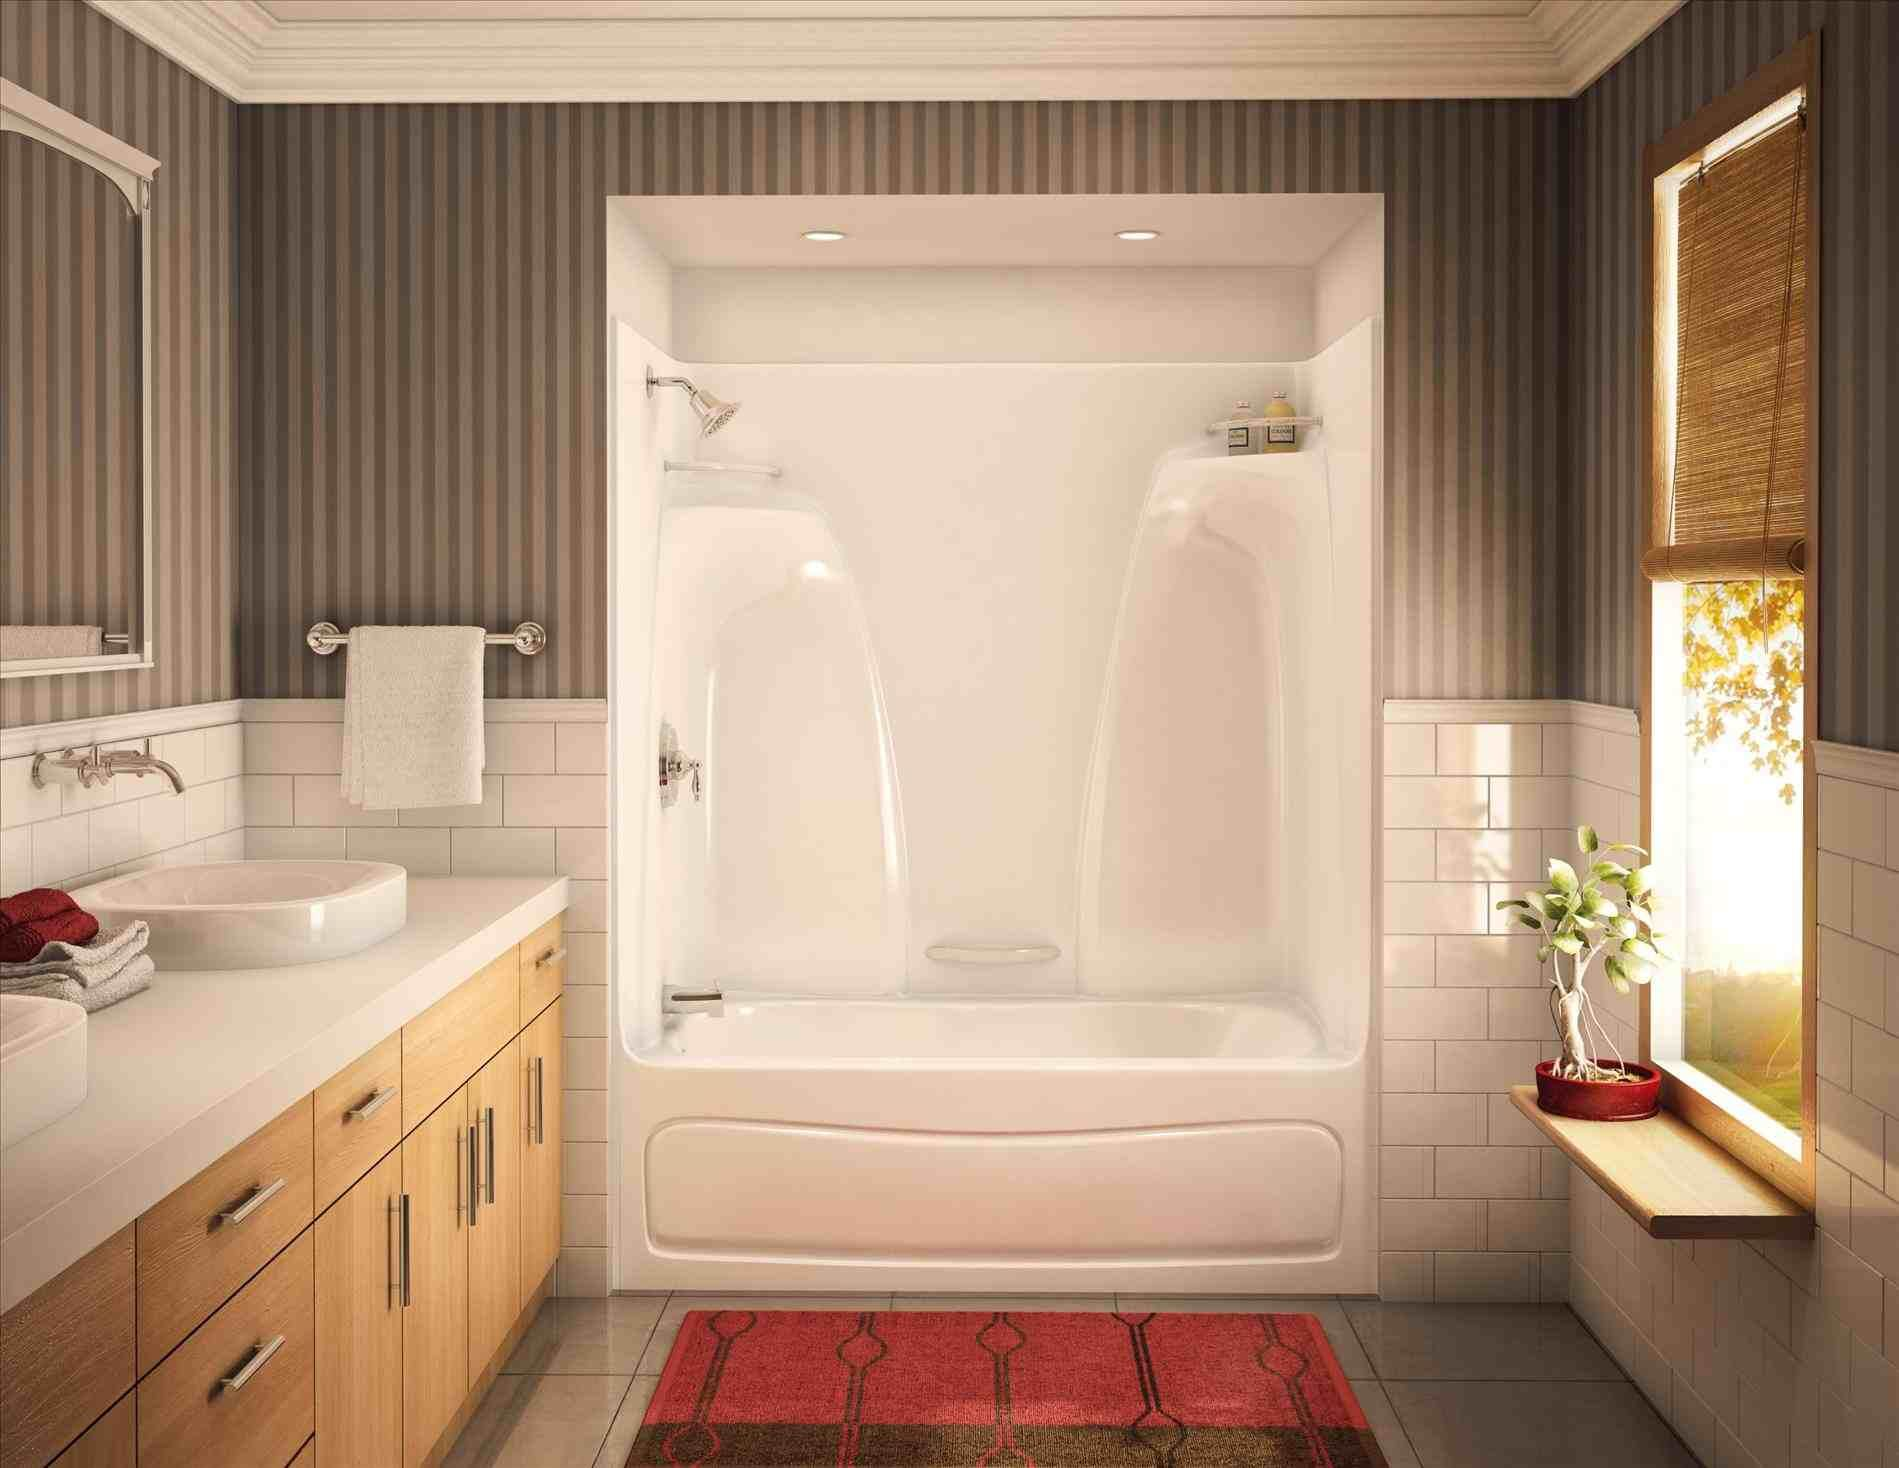 This Shower Tub Combo Inserts Steam Shower Kit Canada Showers Decoration Showers Tub Combinations H Bathtub Shower Combo Shower Tub Corner Bathtub Shower